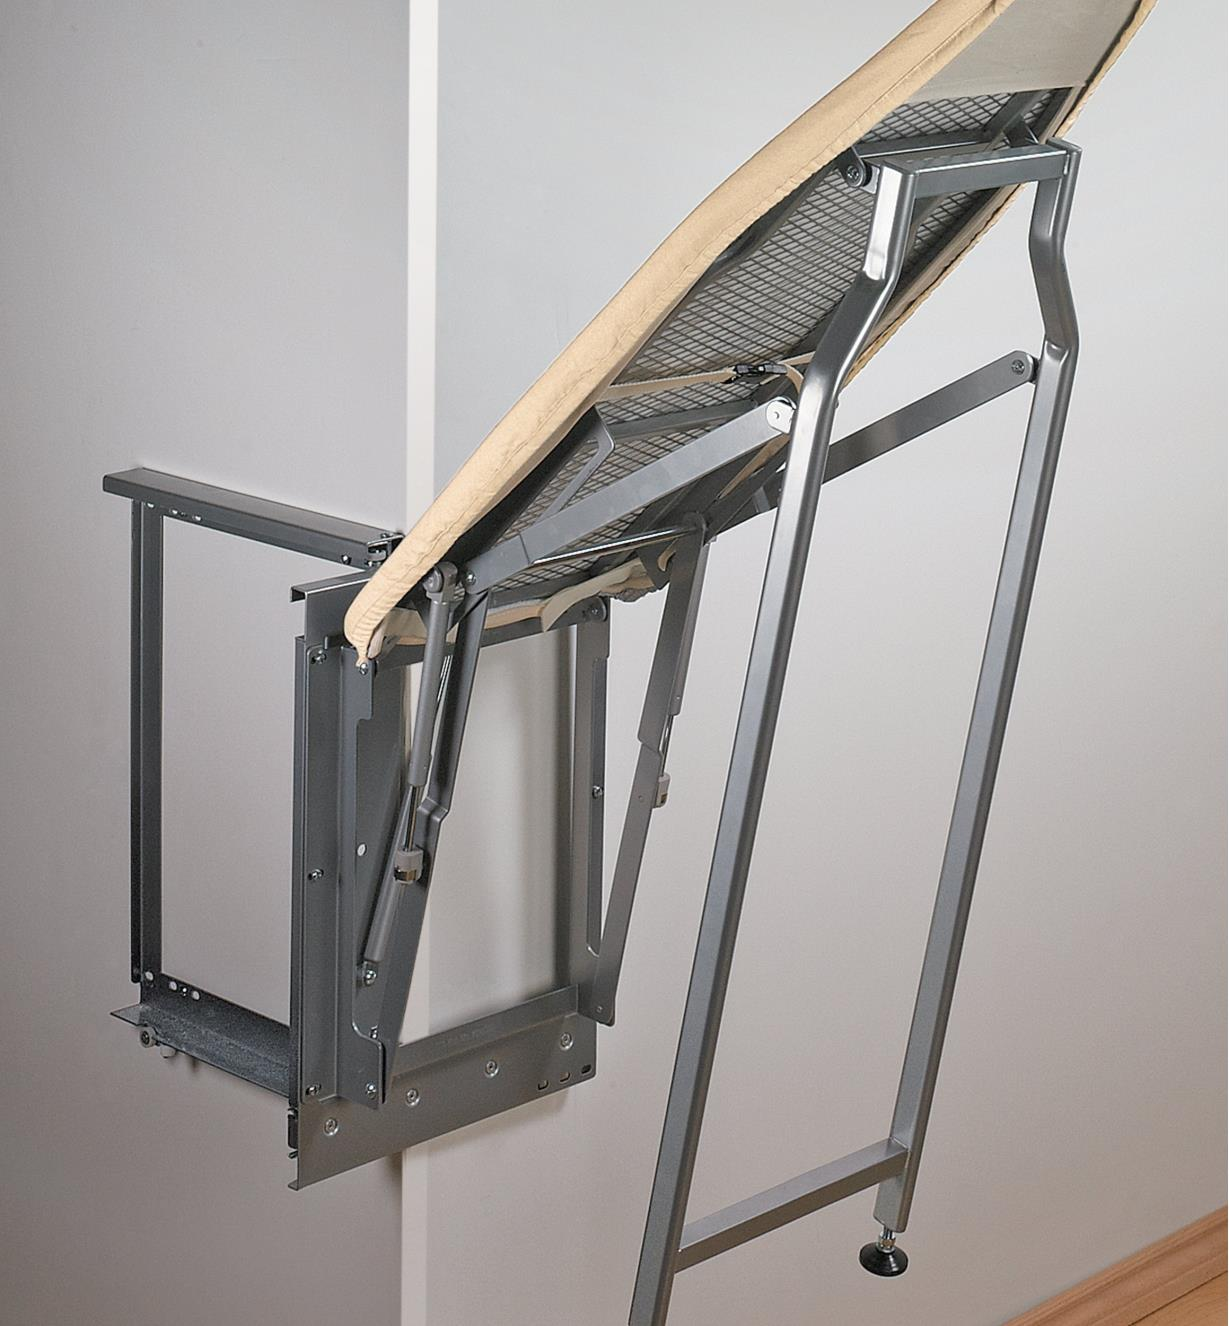 Pull-Out Ironing Board swinging downward to rest on its hinged legs